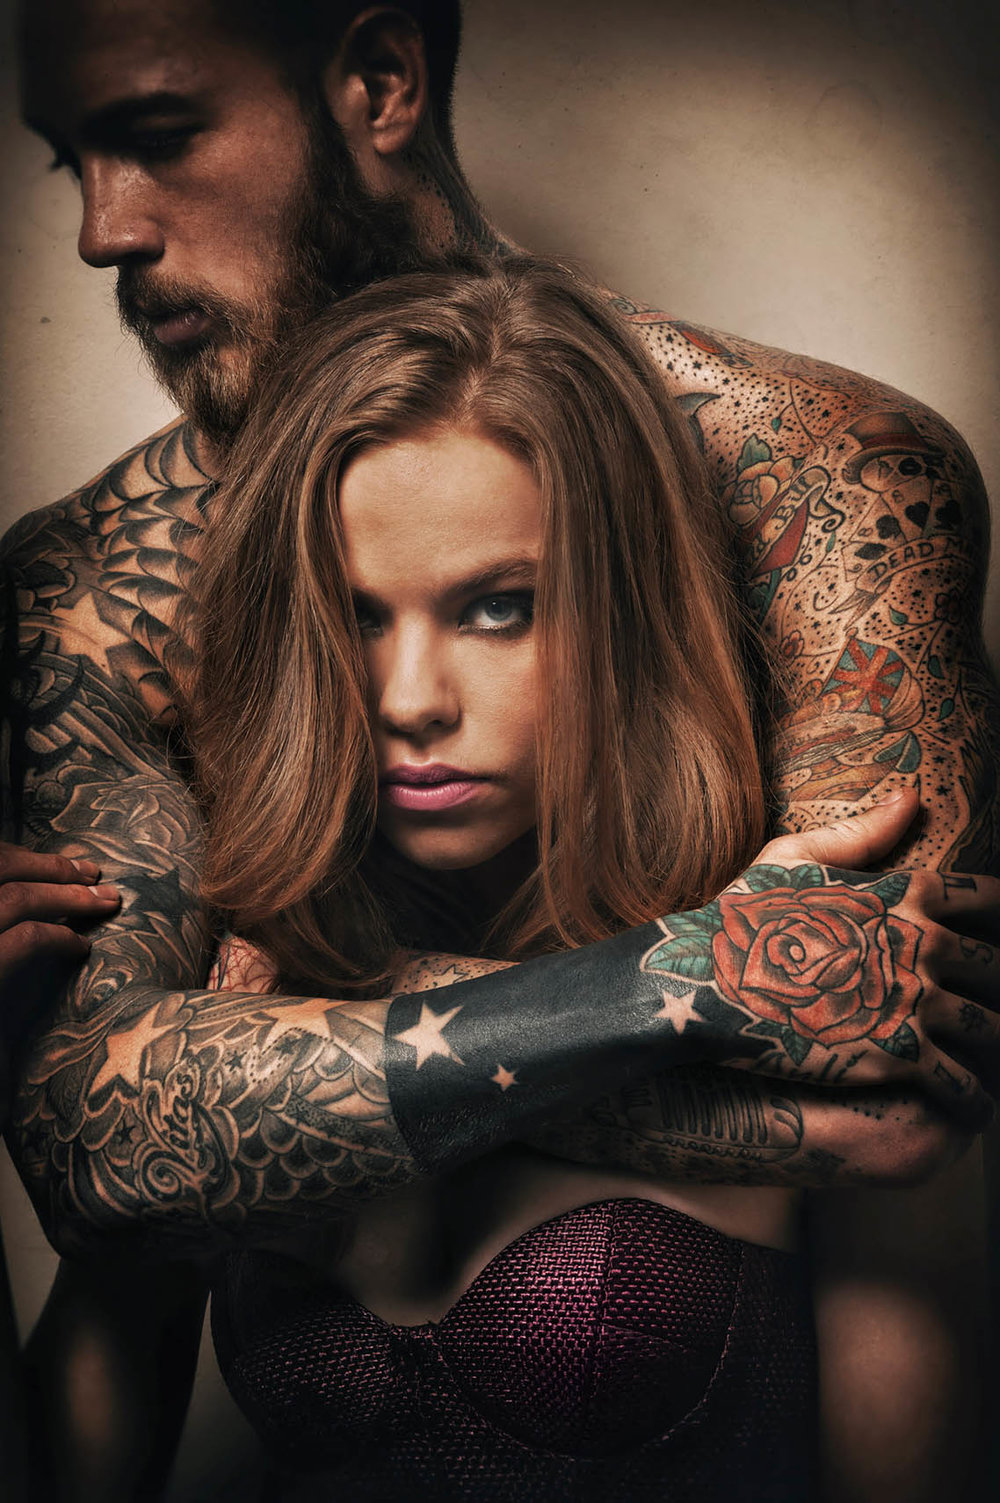 Joe Giacomet - Tattooed Man with arms around girl